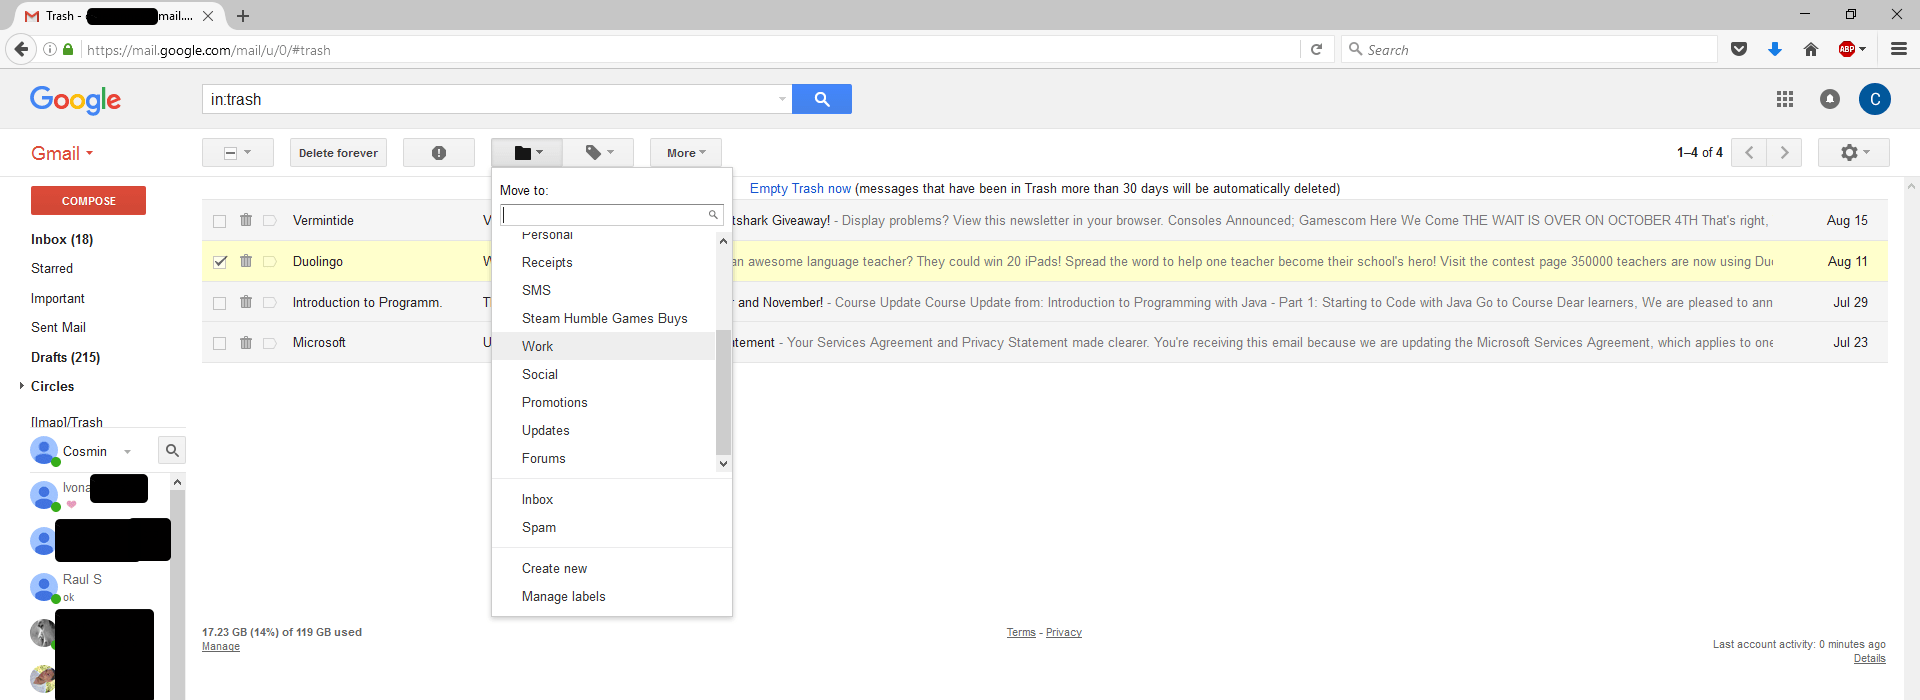 Moving Mail from Gmail's Trash